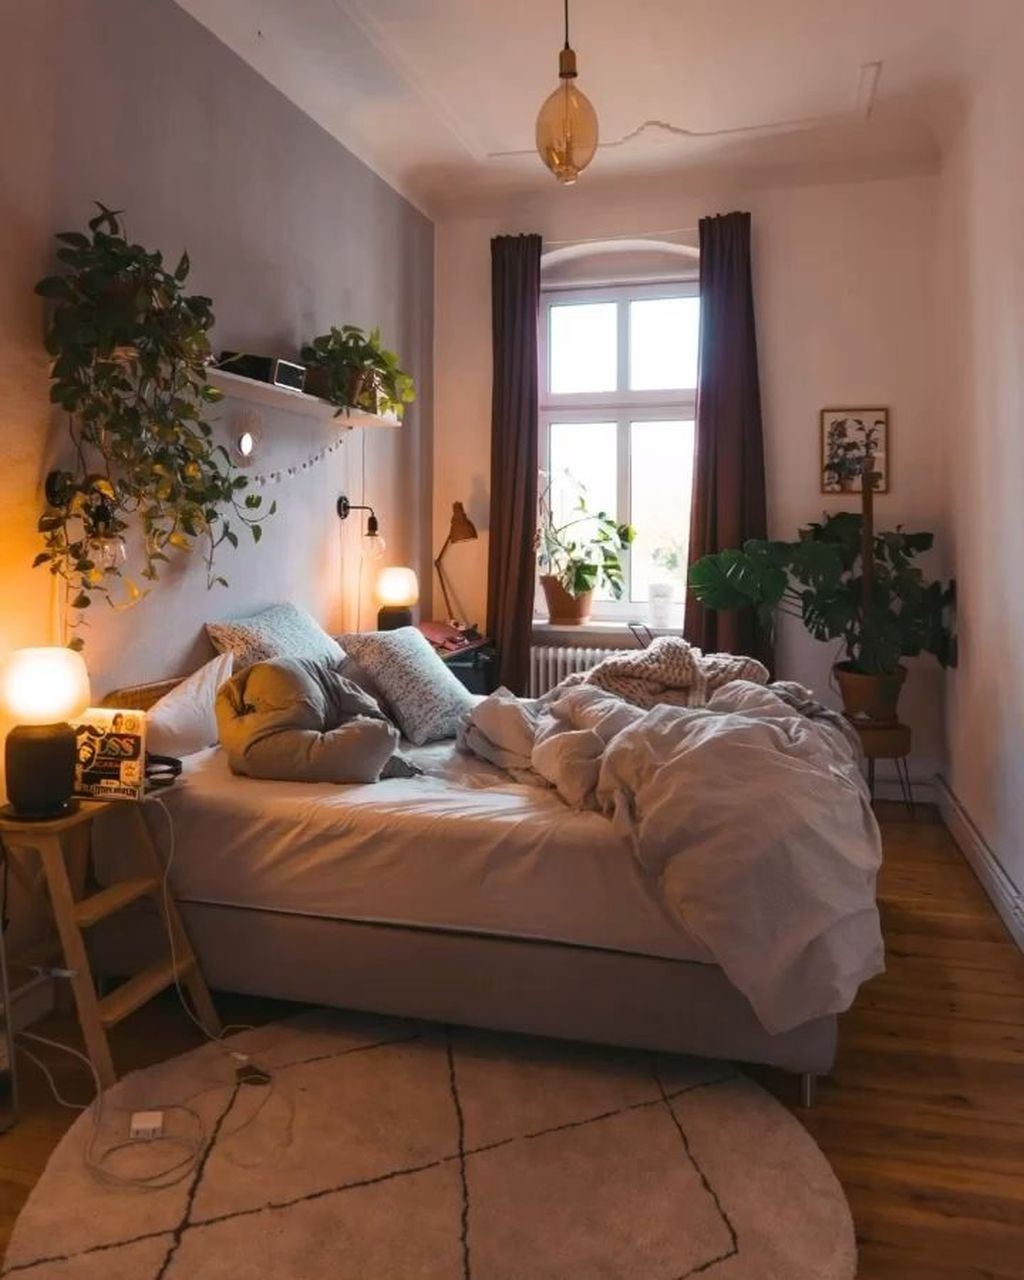 Lovely Bedroom Decor With Plant Ideas 30